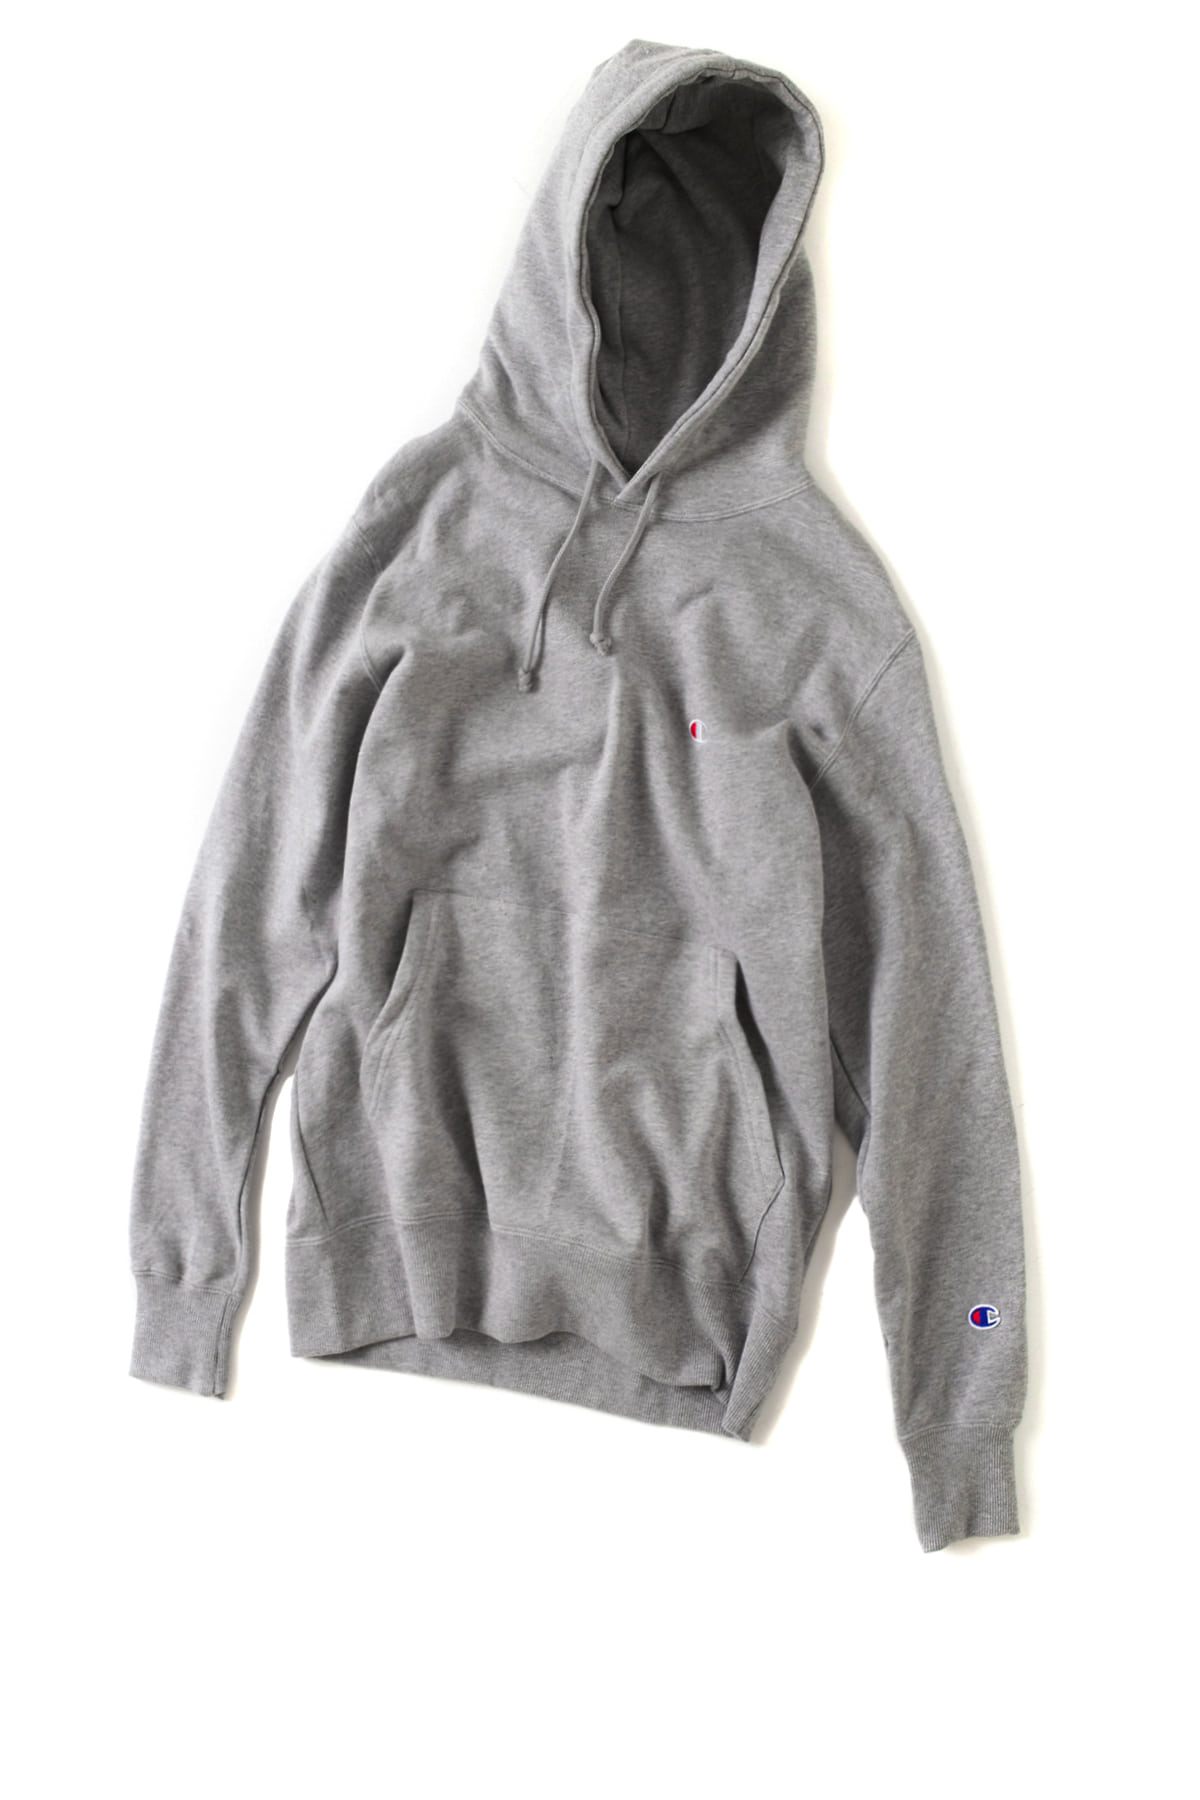 Champion : Basic Pullover Hooded SweatShirt (Oxford Gray)